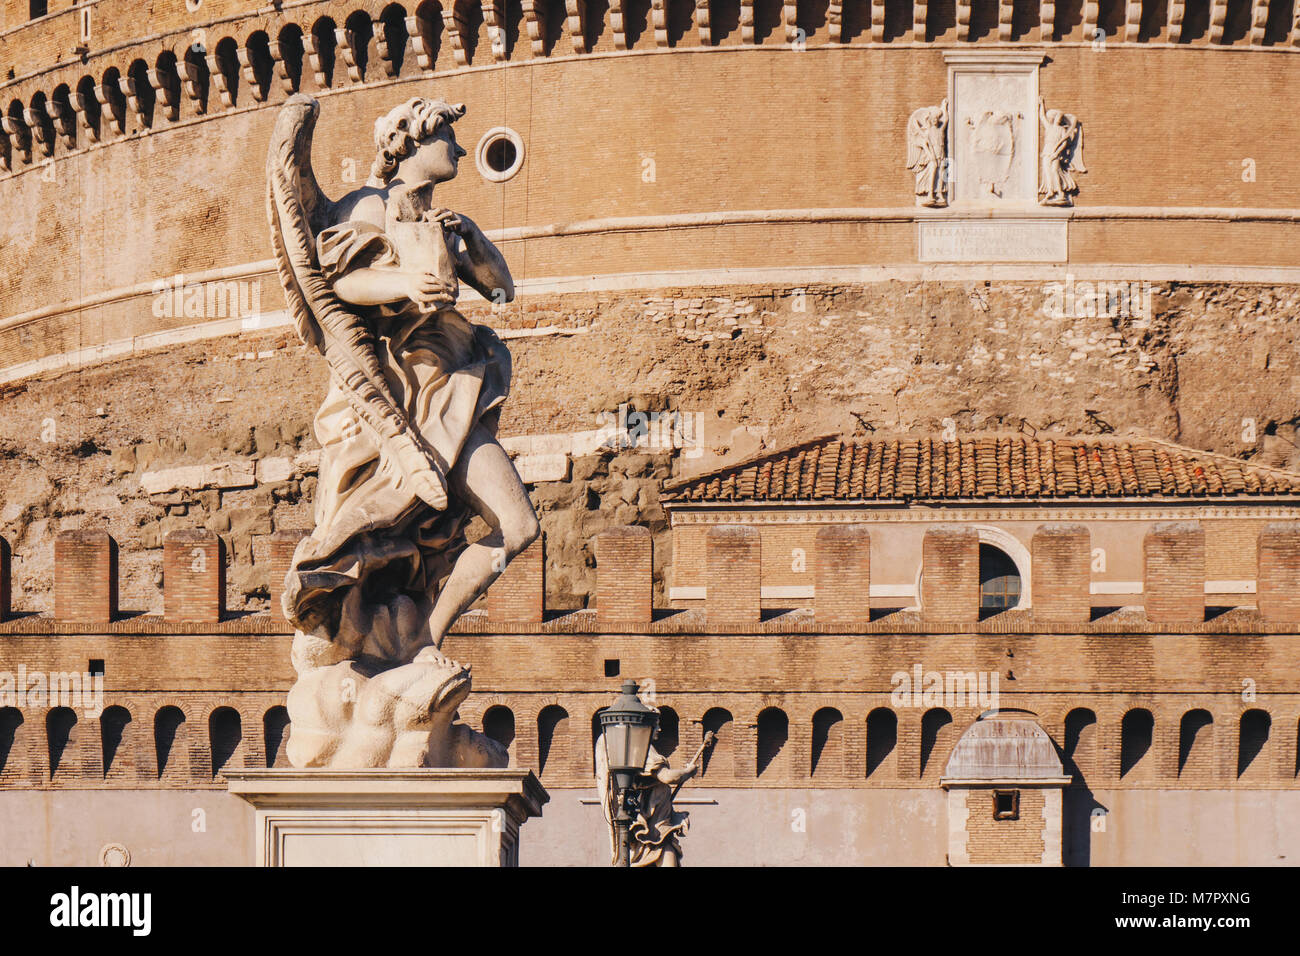 The statues on the Sant' Angelo Bridge in front of Sant' Angelo Castle in Rome, Italy - Stock Image